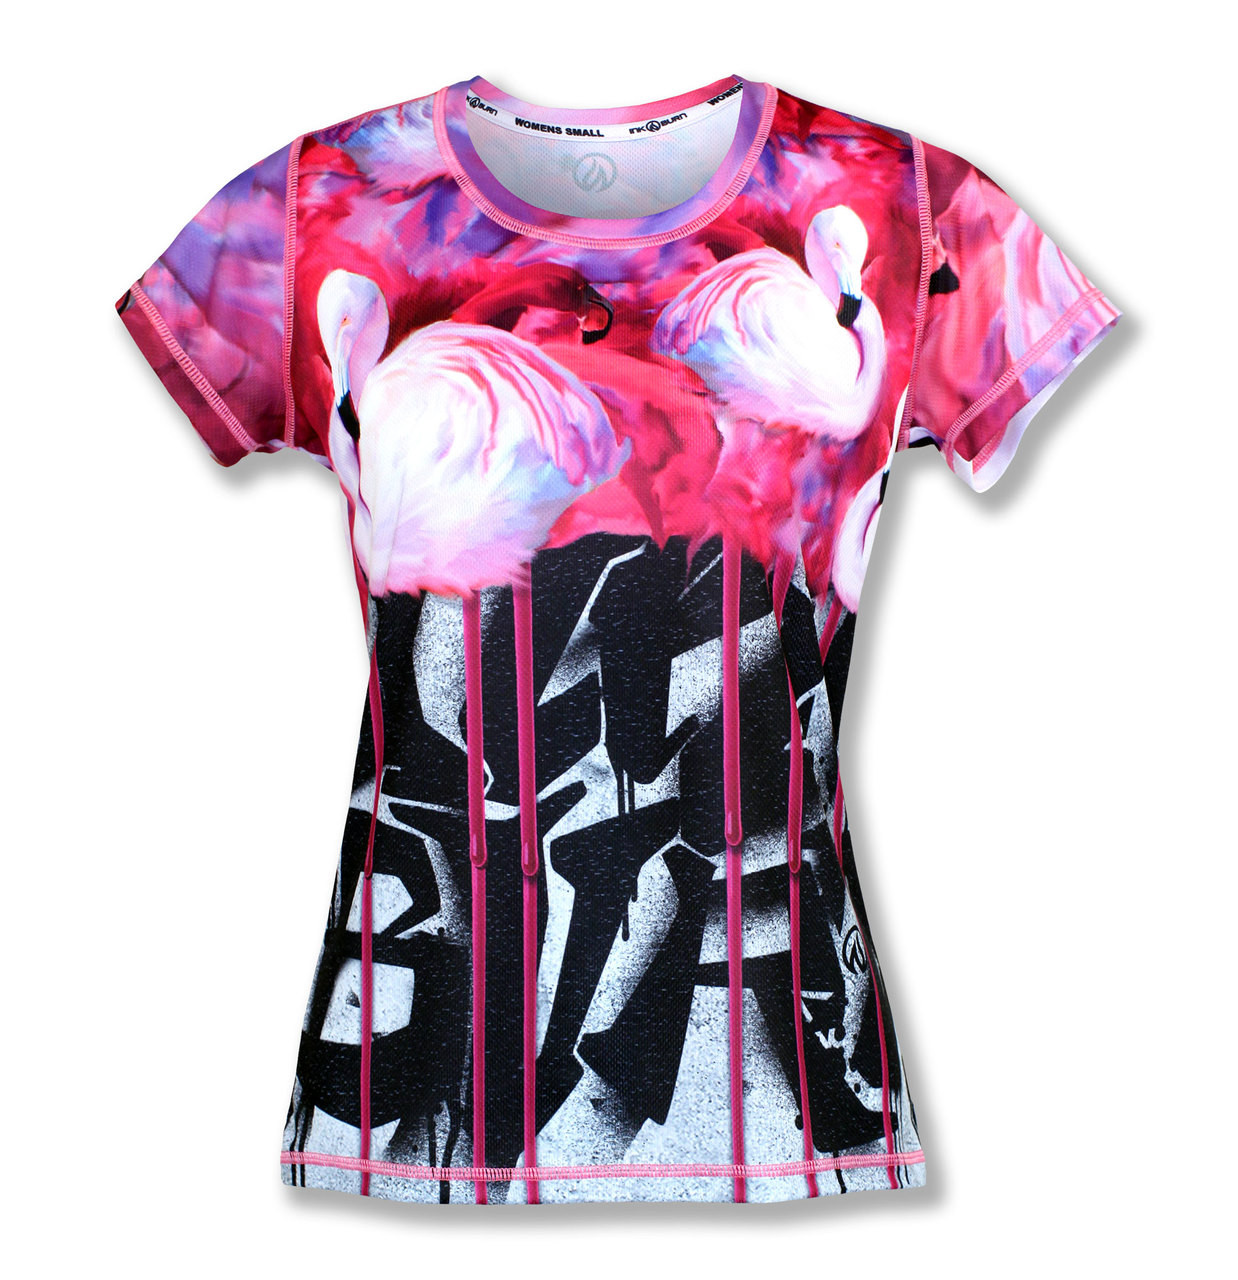 dab85b1901 INKnBURN Women's Urban Flamingo Tech Shirt. Great for running ...